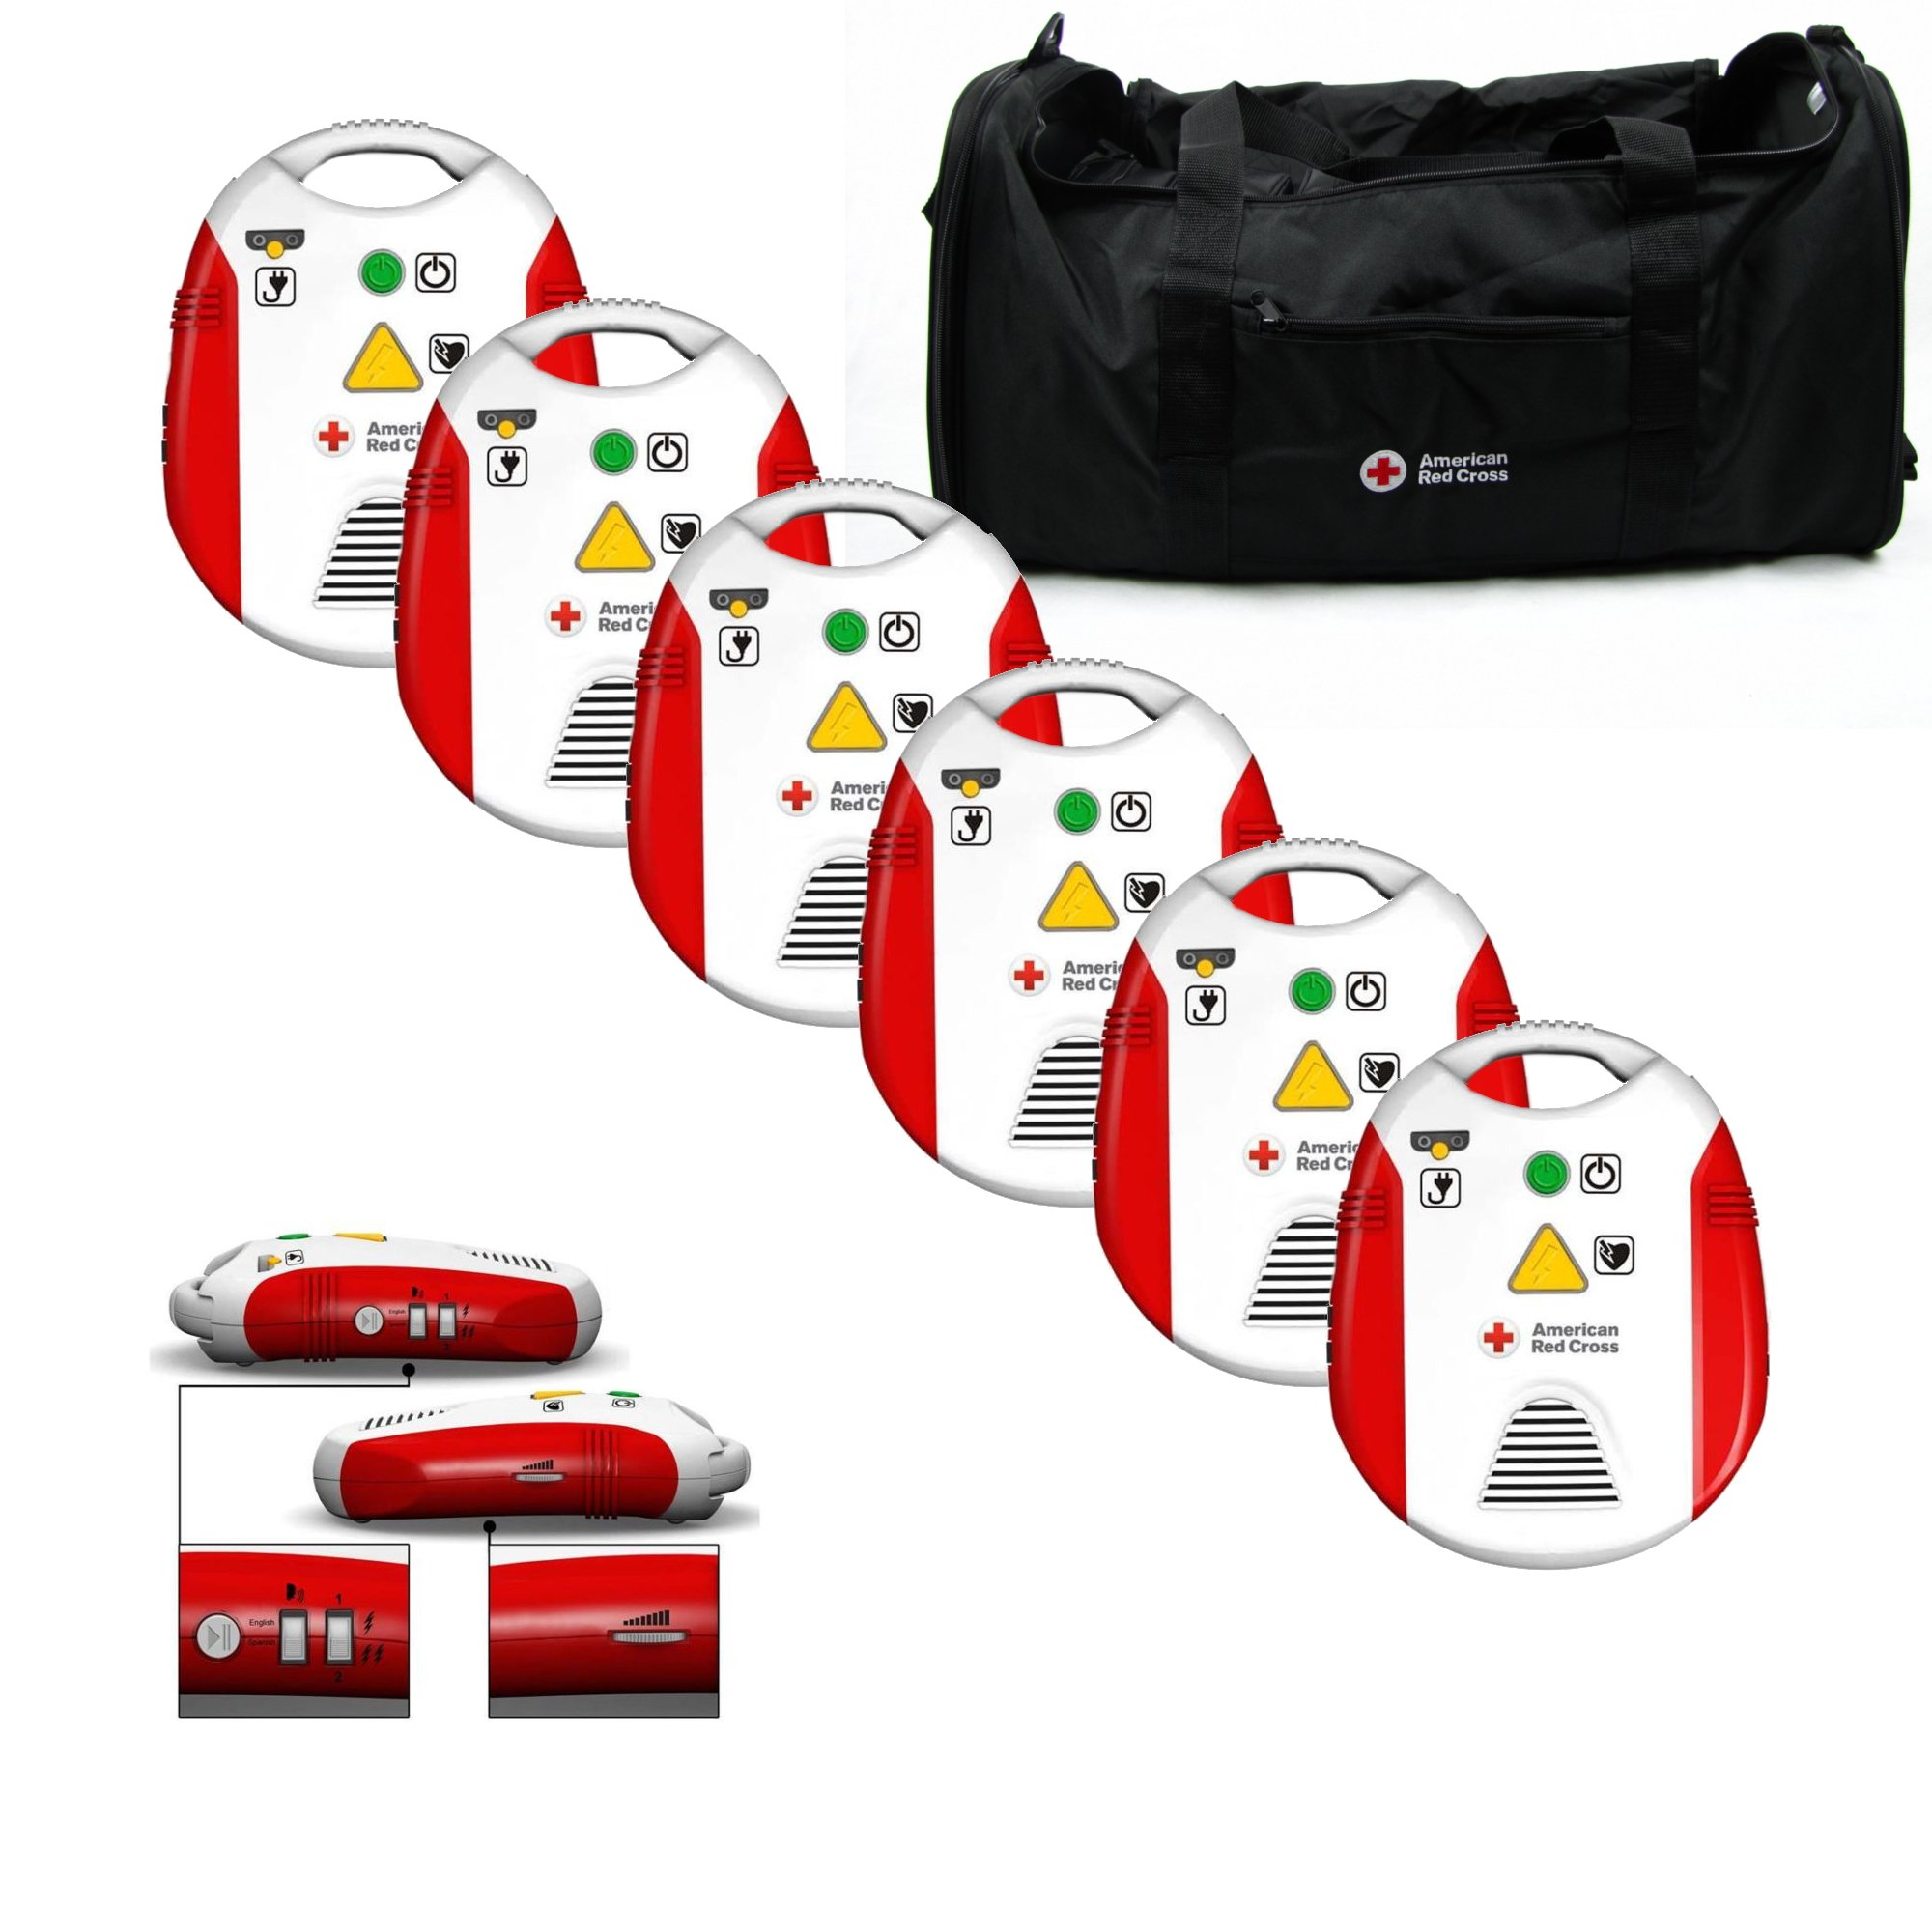 AED Trainer Sale (6-Pack) - Brand-New AED Trainers (CPR/AED Training Device) by American Red Cross